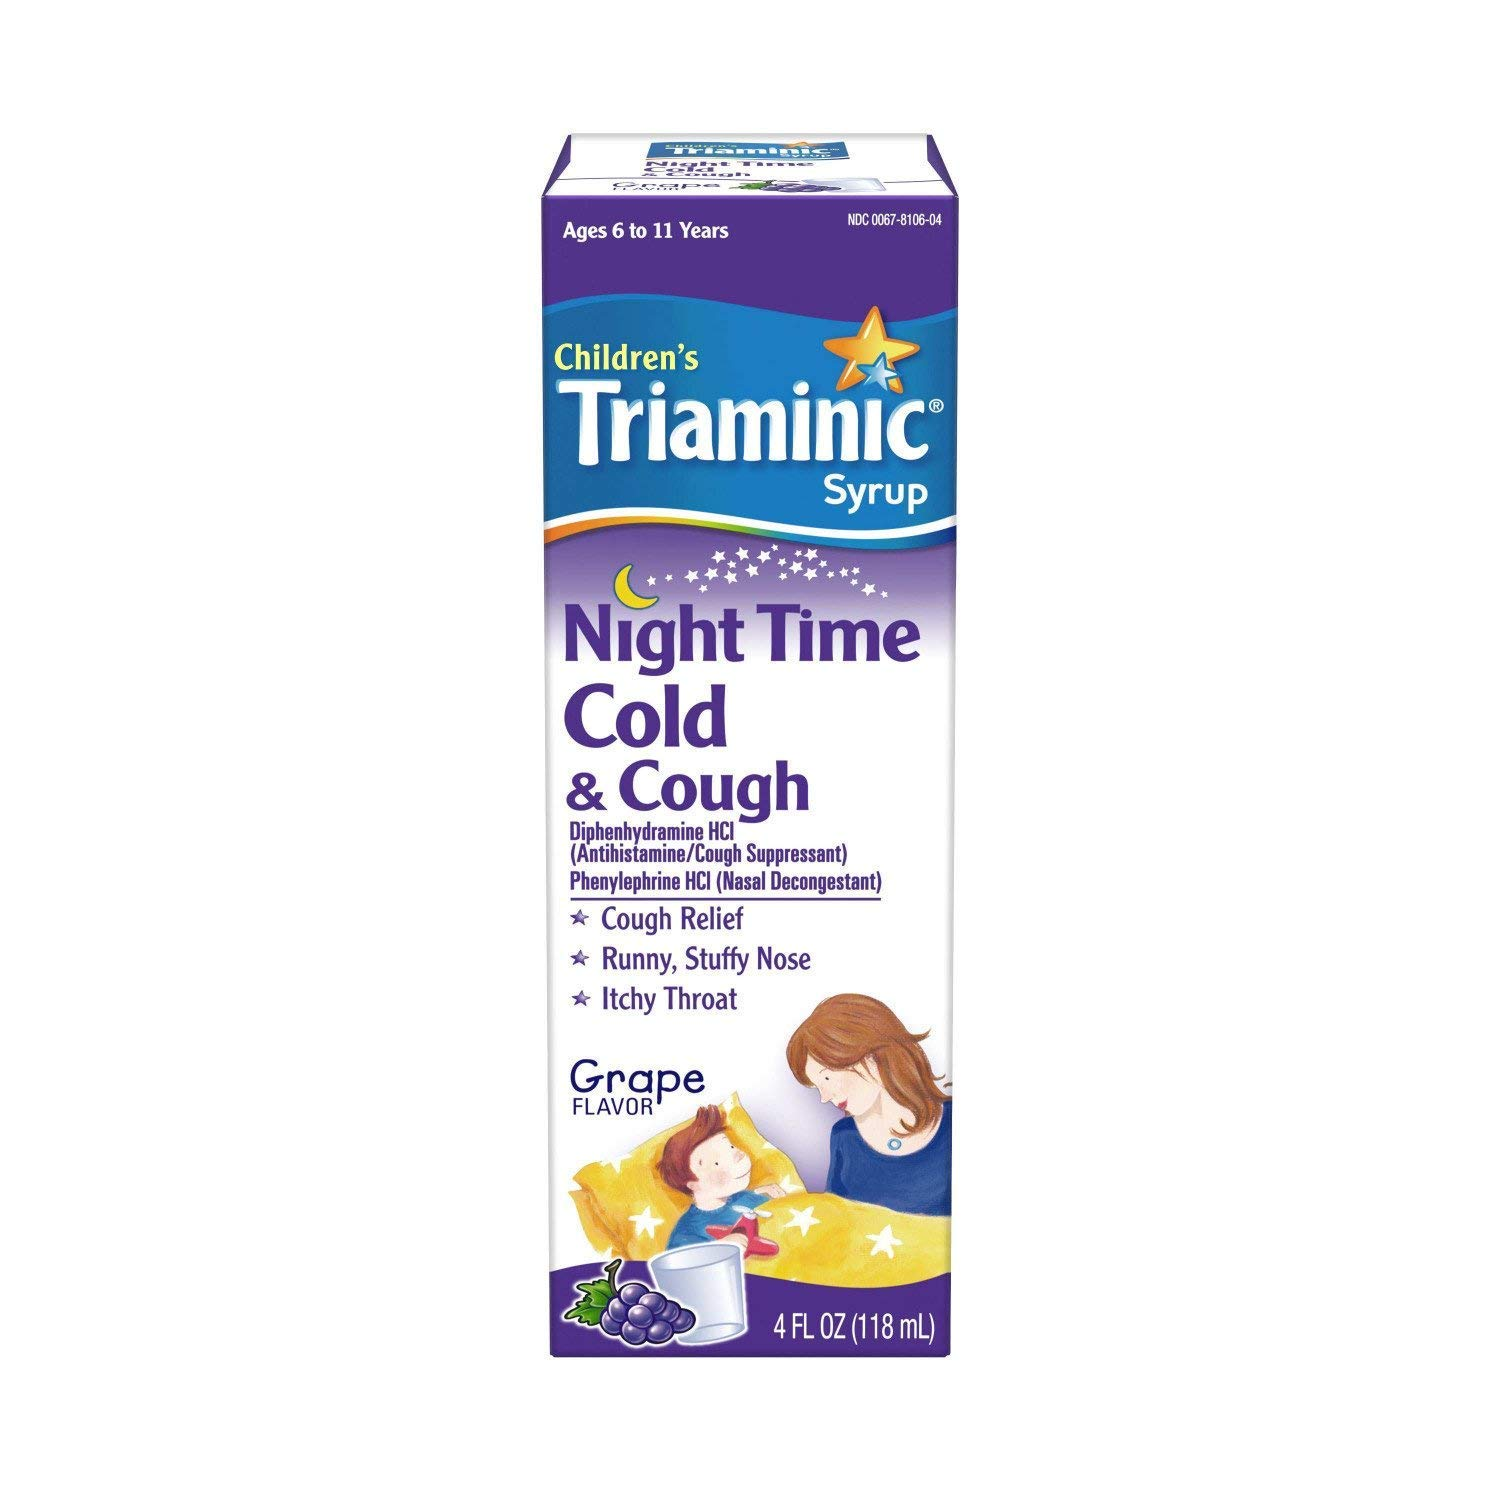 Triaminic Children's, Night Time, Cold & Cough Syrup, Grape - 4 oz, Pack of 5 by Triaminic